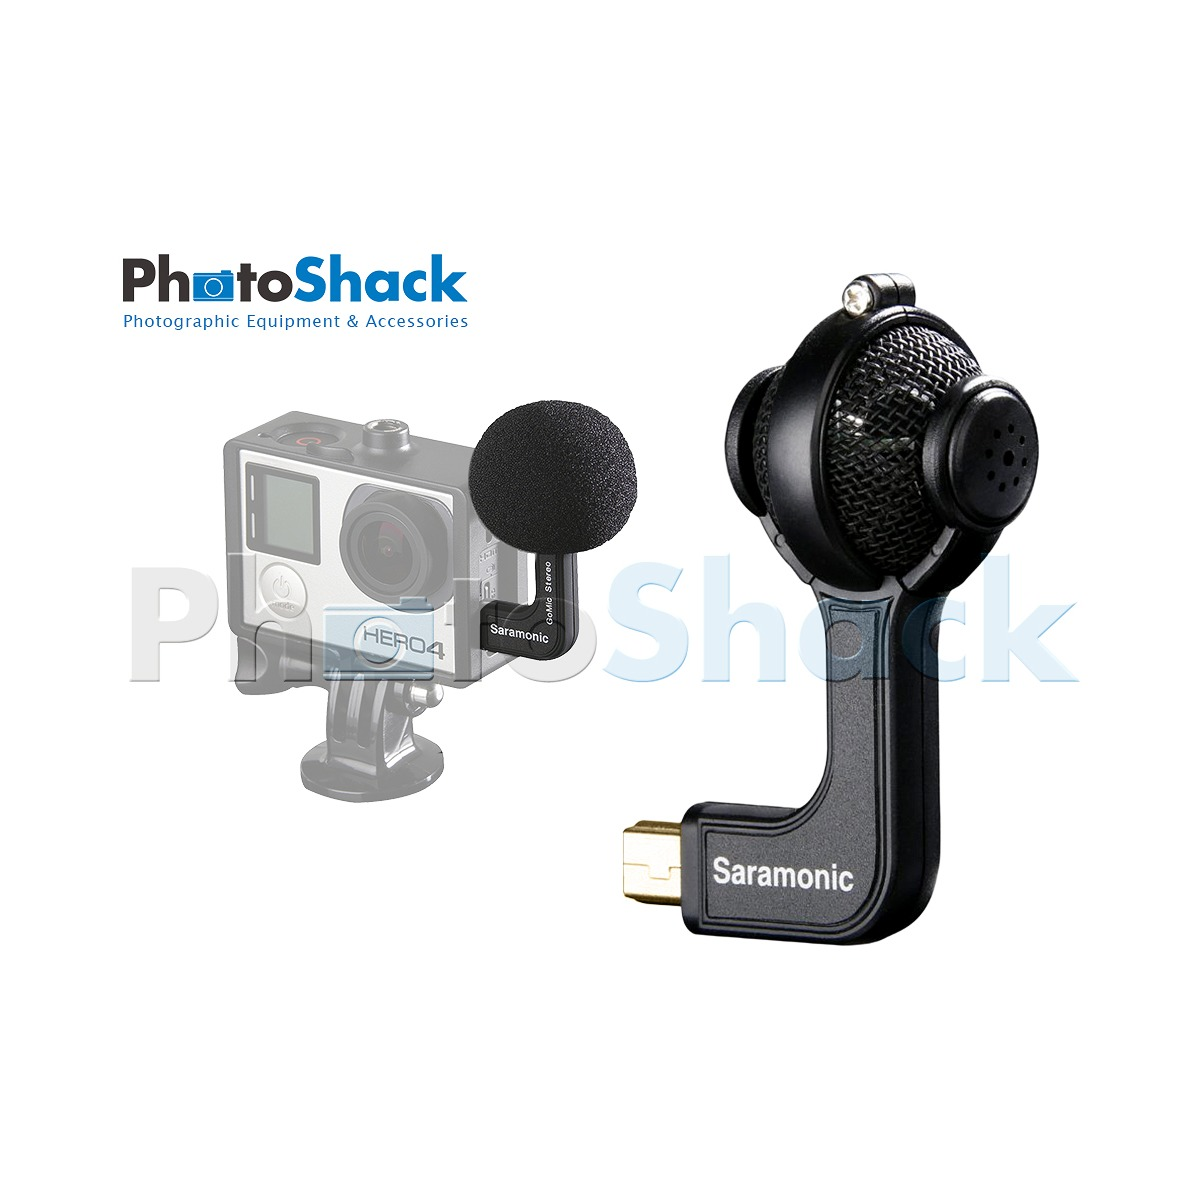 Saramonic Stereo microphone for GoPro